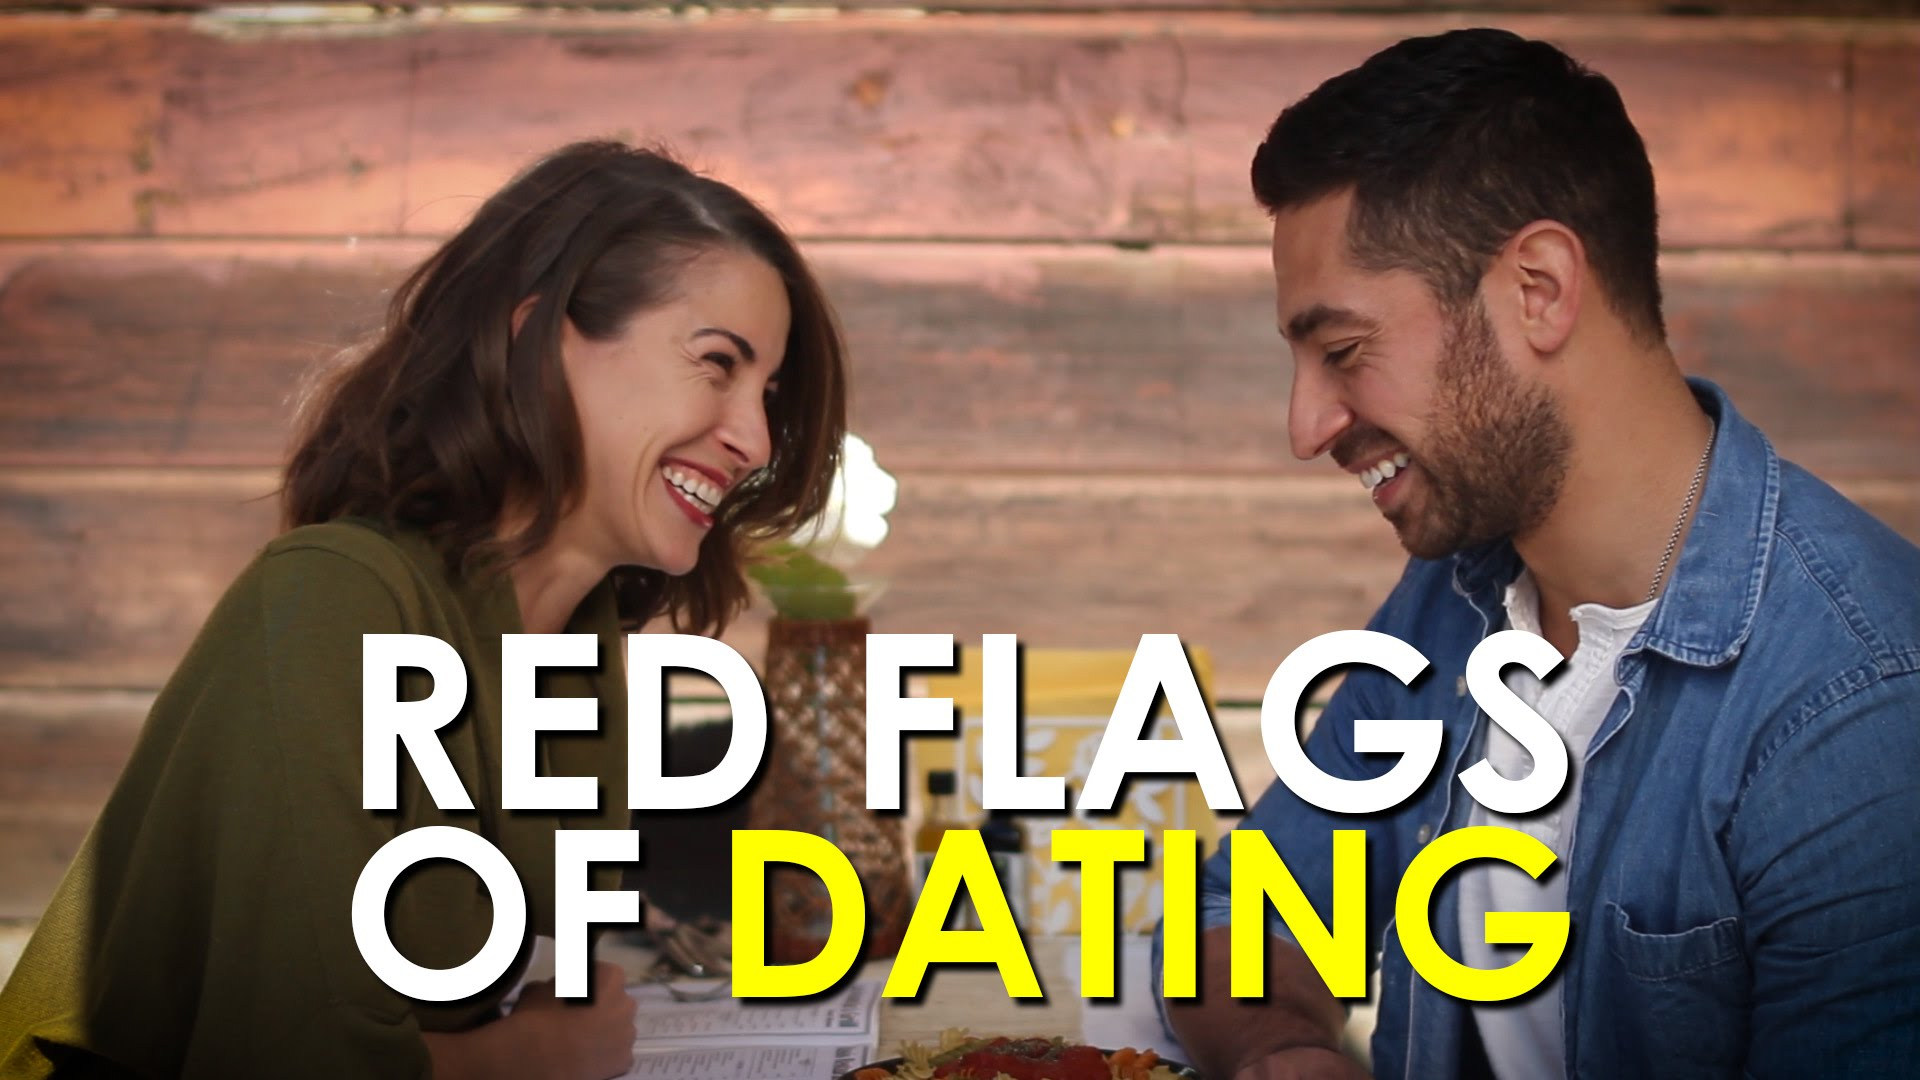 WATCH Real Men Share Their First-Date Red Flags